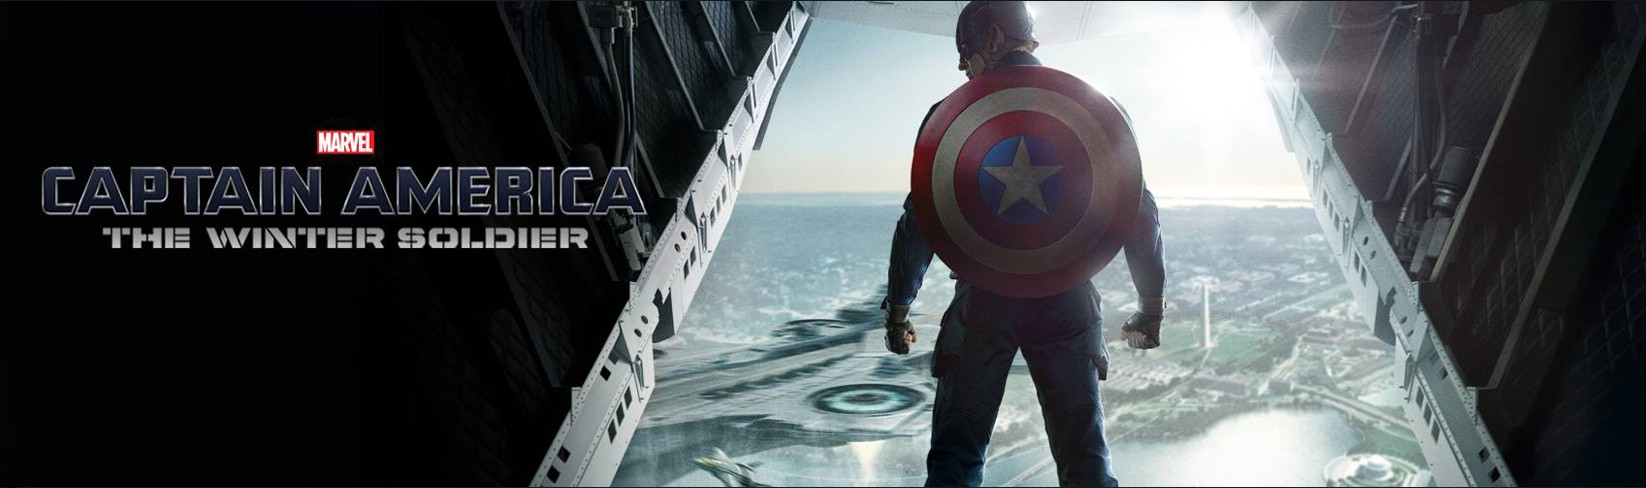 006_captainamerica2